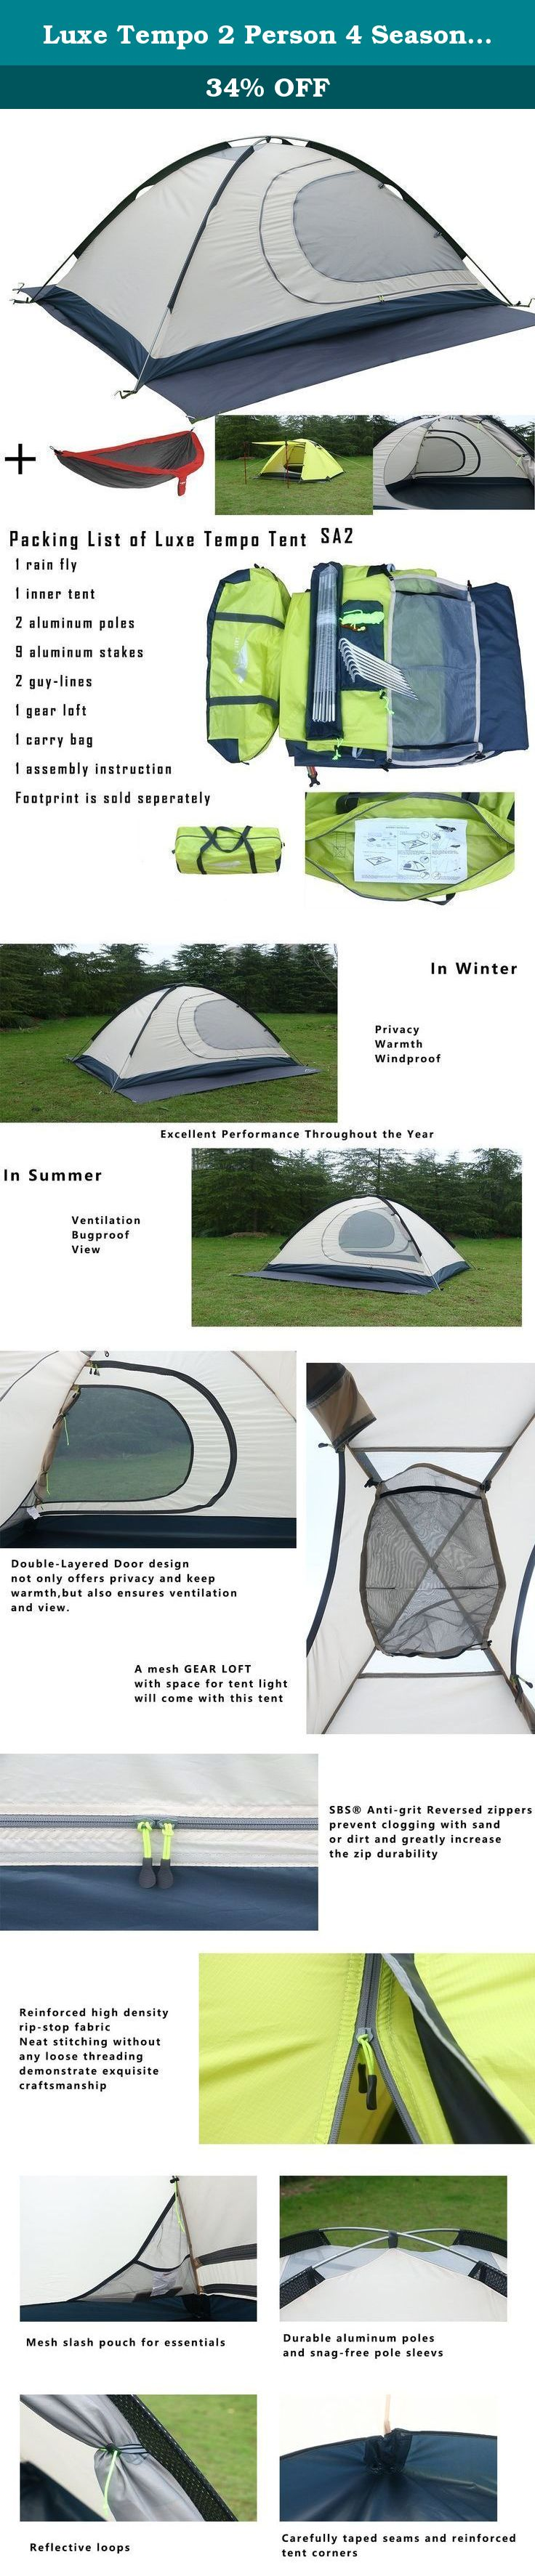 Luxe Tempo 2 Person 4 Season Tents for C&ing with Free Hammock Backpacking Aluminum Poles All  sc 1 st  Pinterest & Luxe Tempo 2 Person 4 Season Tents for Camping with Free Hammock ...